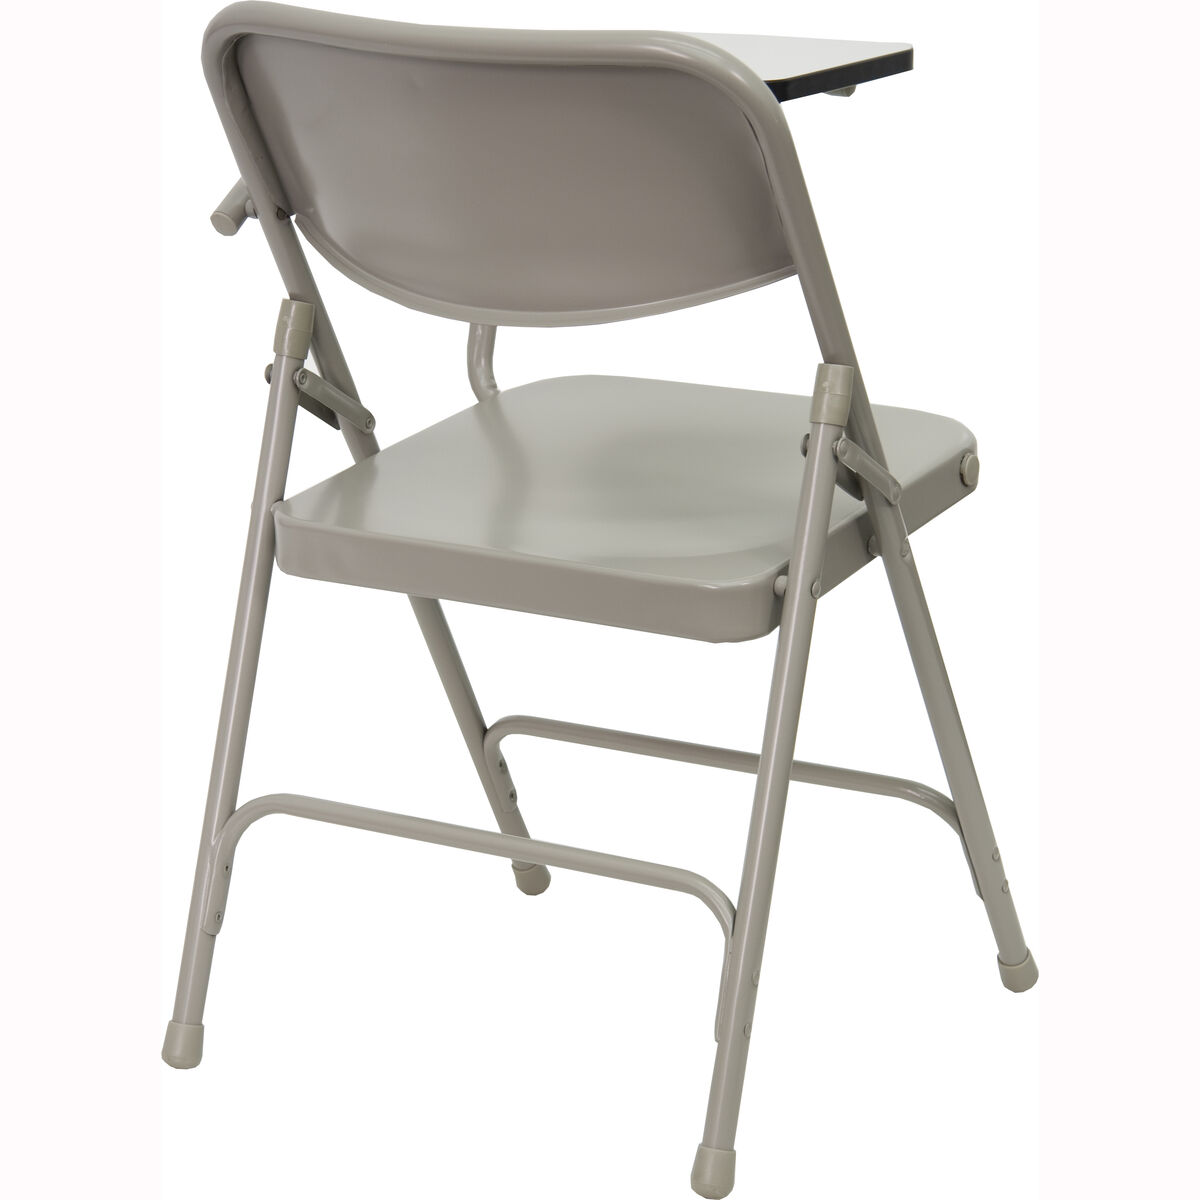 Magnificent Premium Steel Folding Chair With Left Handed Tablet Arm Caraccident5 Cool Chair Designs And Ideas Caraccident5Info